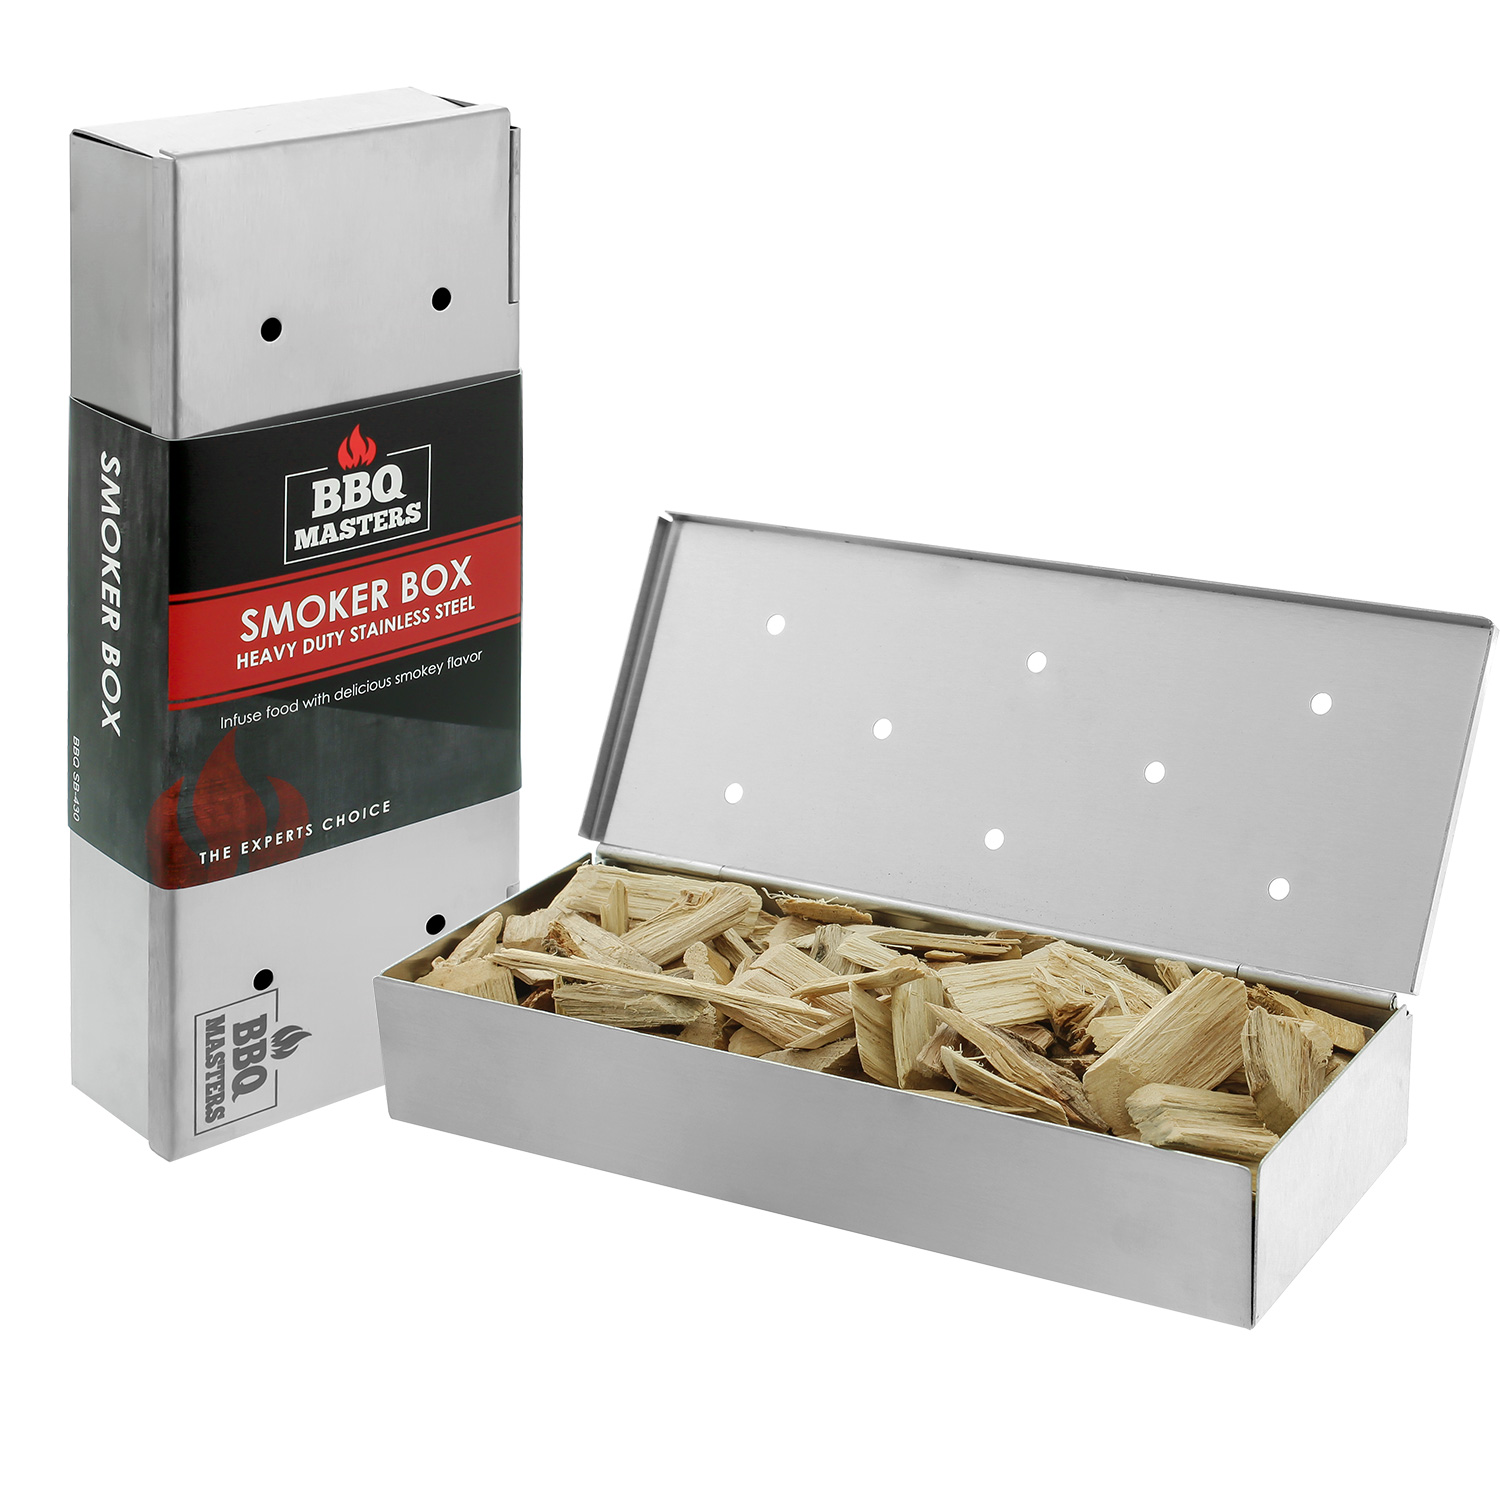 BBQ Masters Smoker Box to Add Smokey Flavors to Barbecue Meats - Stainless Steel Wood Chip Smoking Box With Hinged Lid